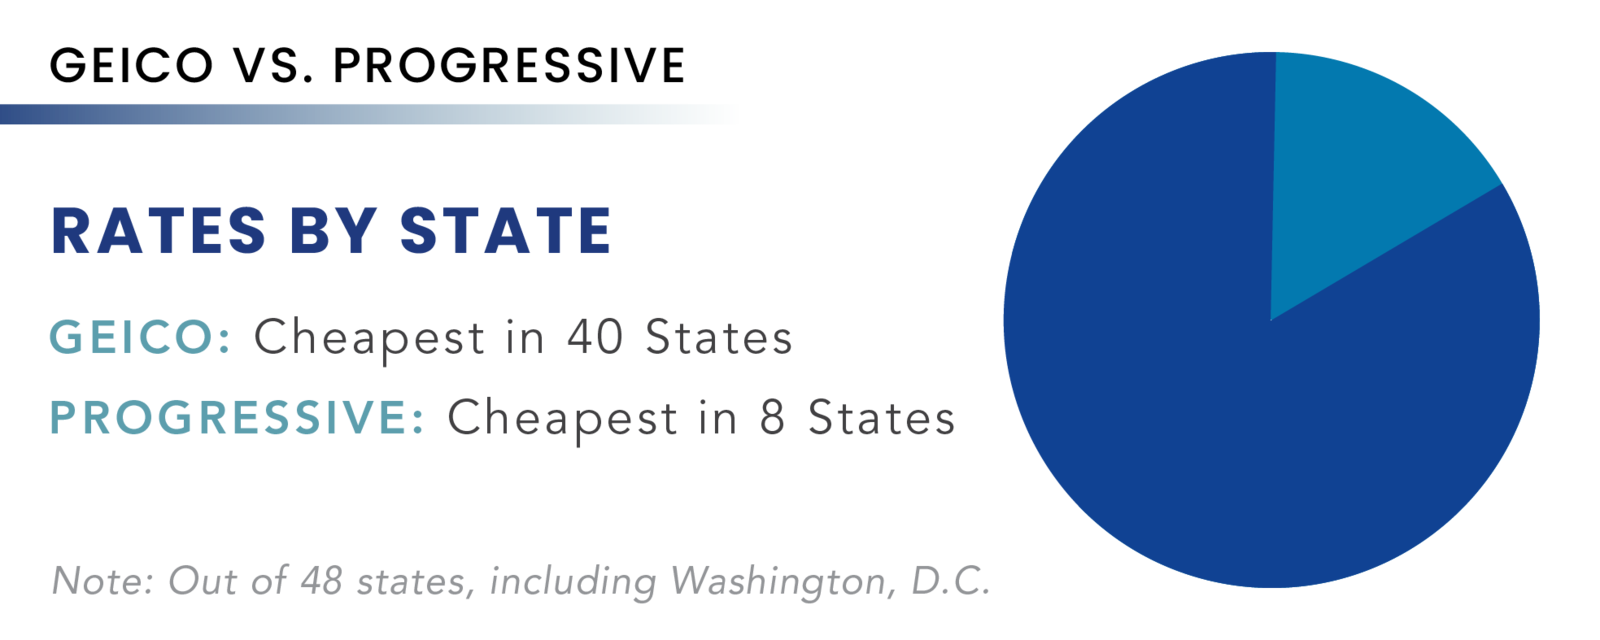 Geico v.s Progressive Auto Insurance Rates by State Comparison